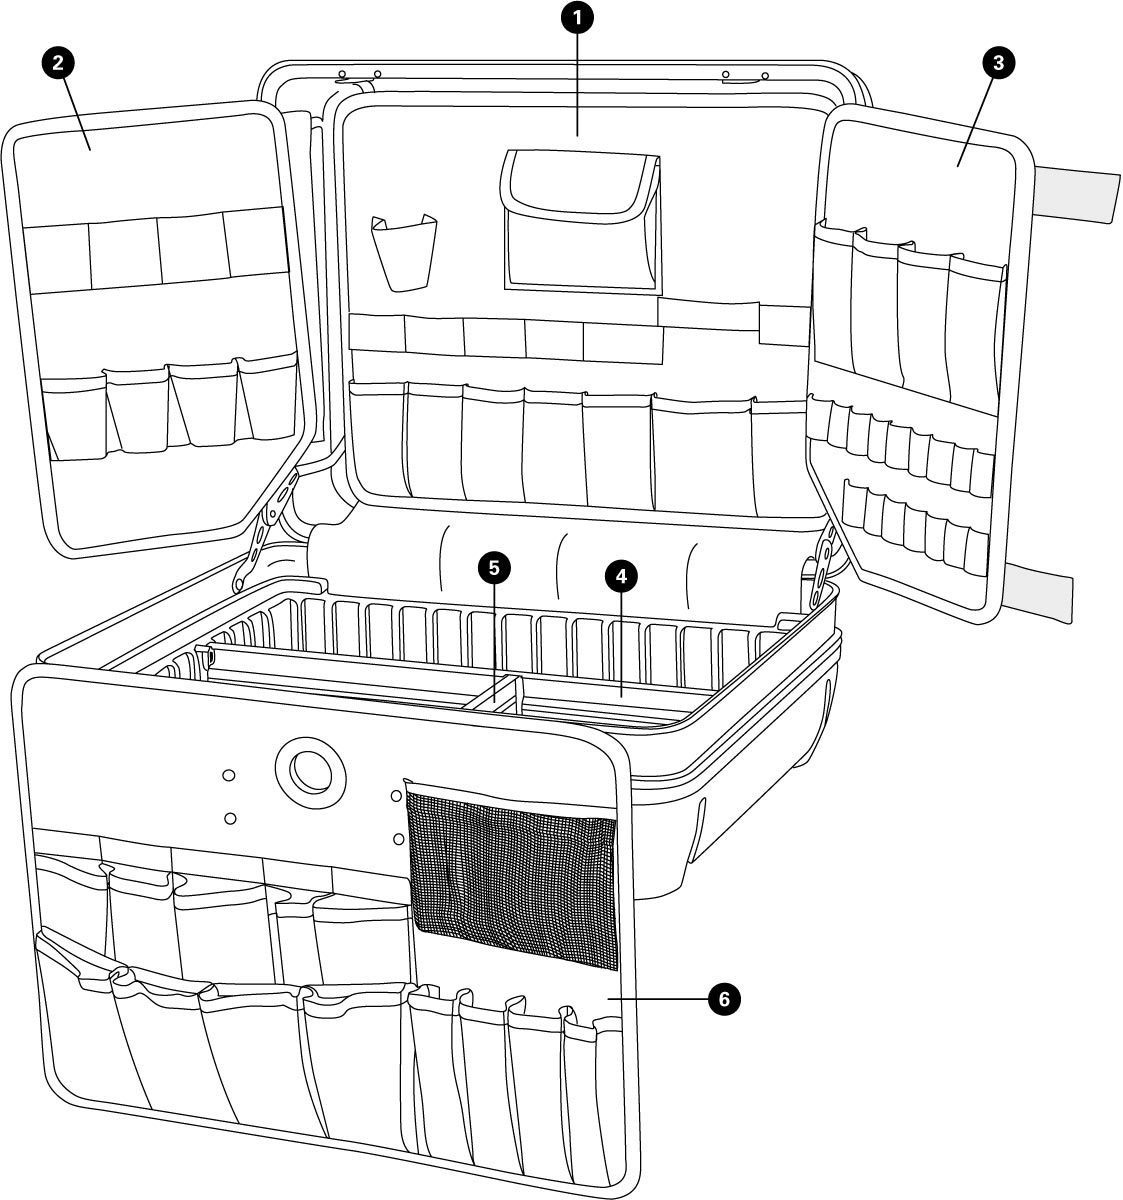 Parts diagram for BX-2.2 Blue Box Tool Case, click to enlarge